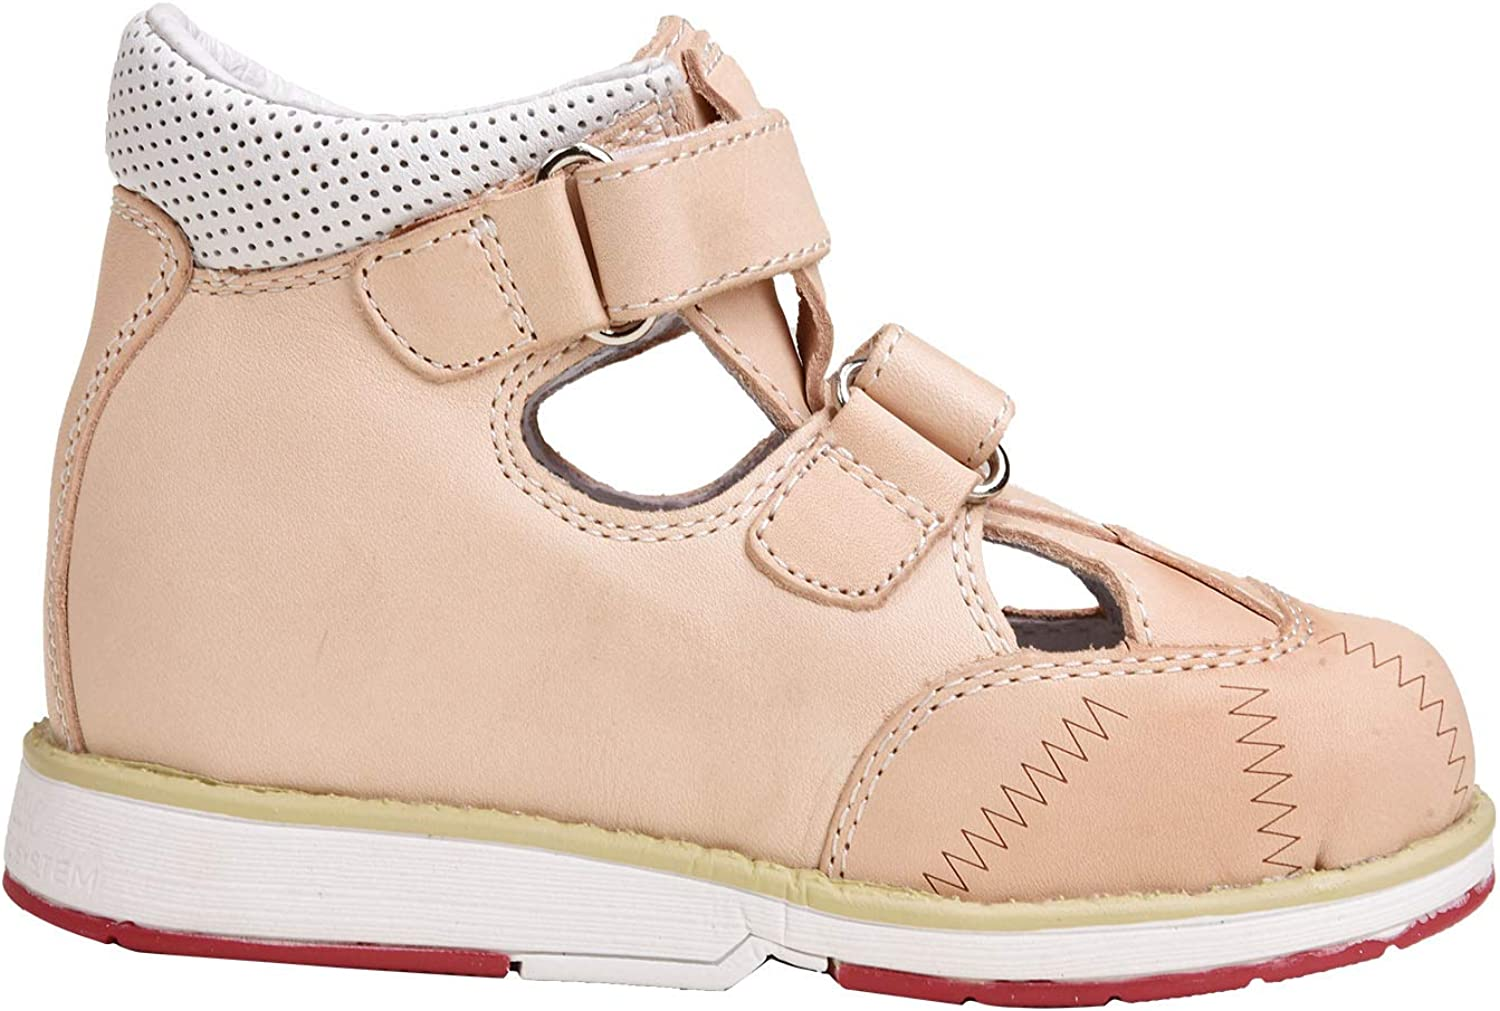 FREEDOMS KIDSS Health Shoes Orthopedic Fashion Apricot Leather Shoes with Arch Support for Girls in Spring and Summer